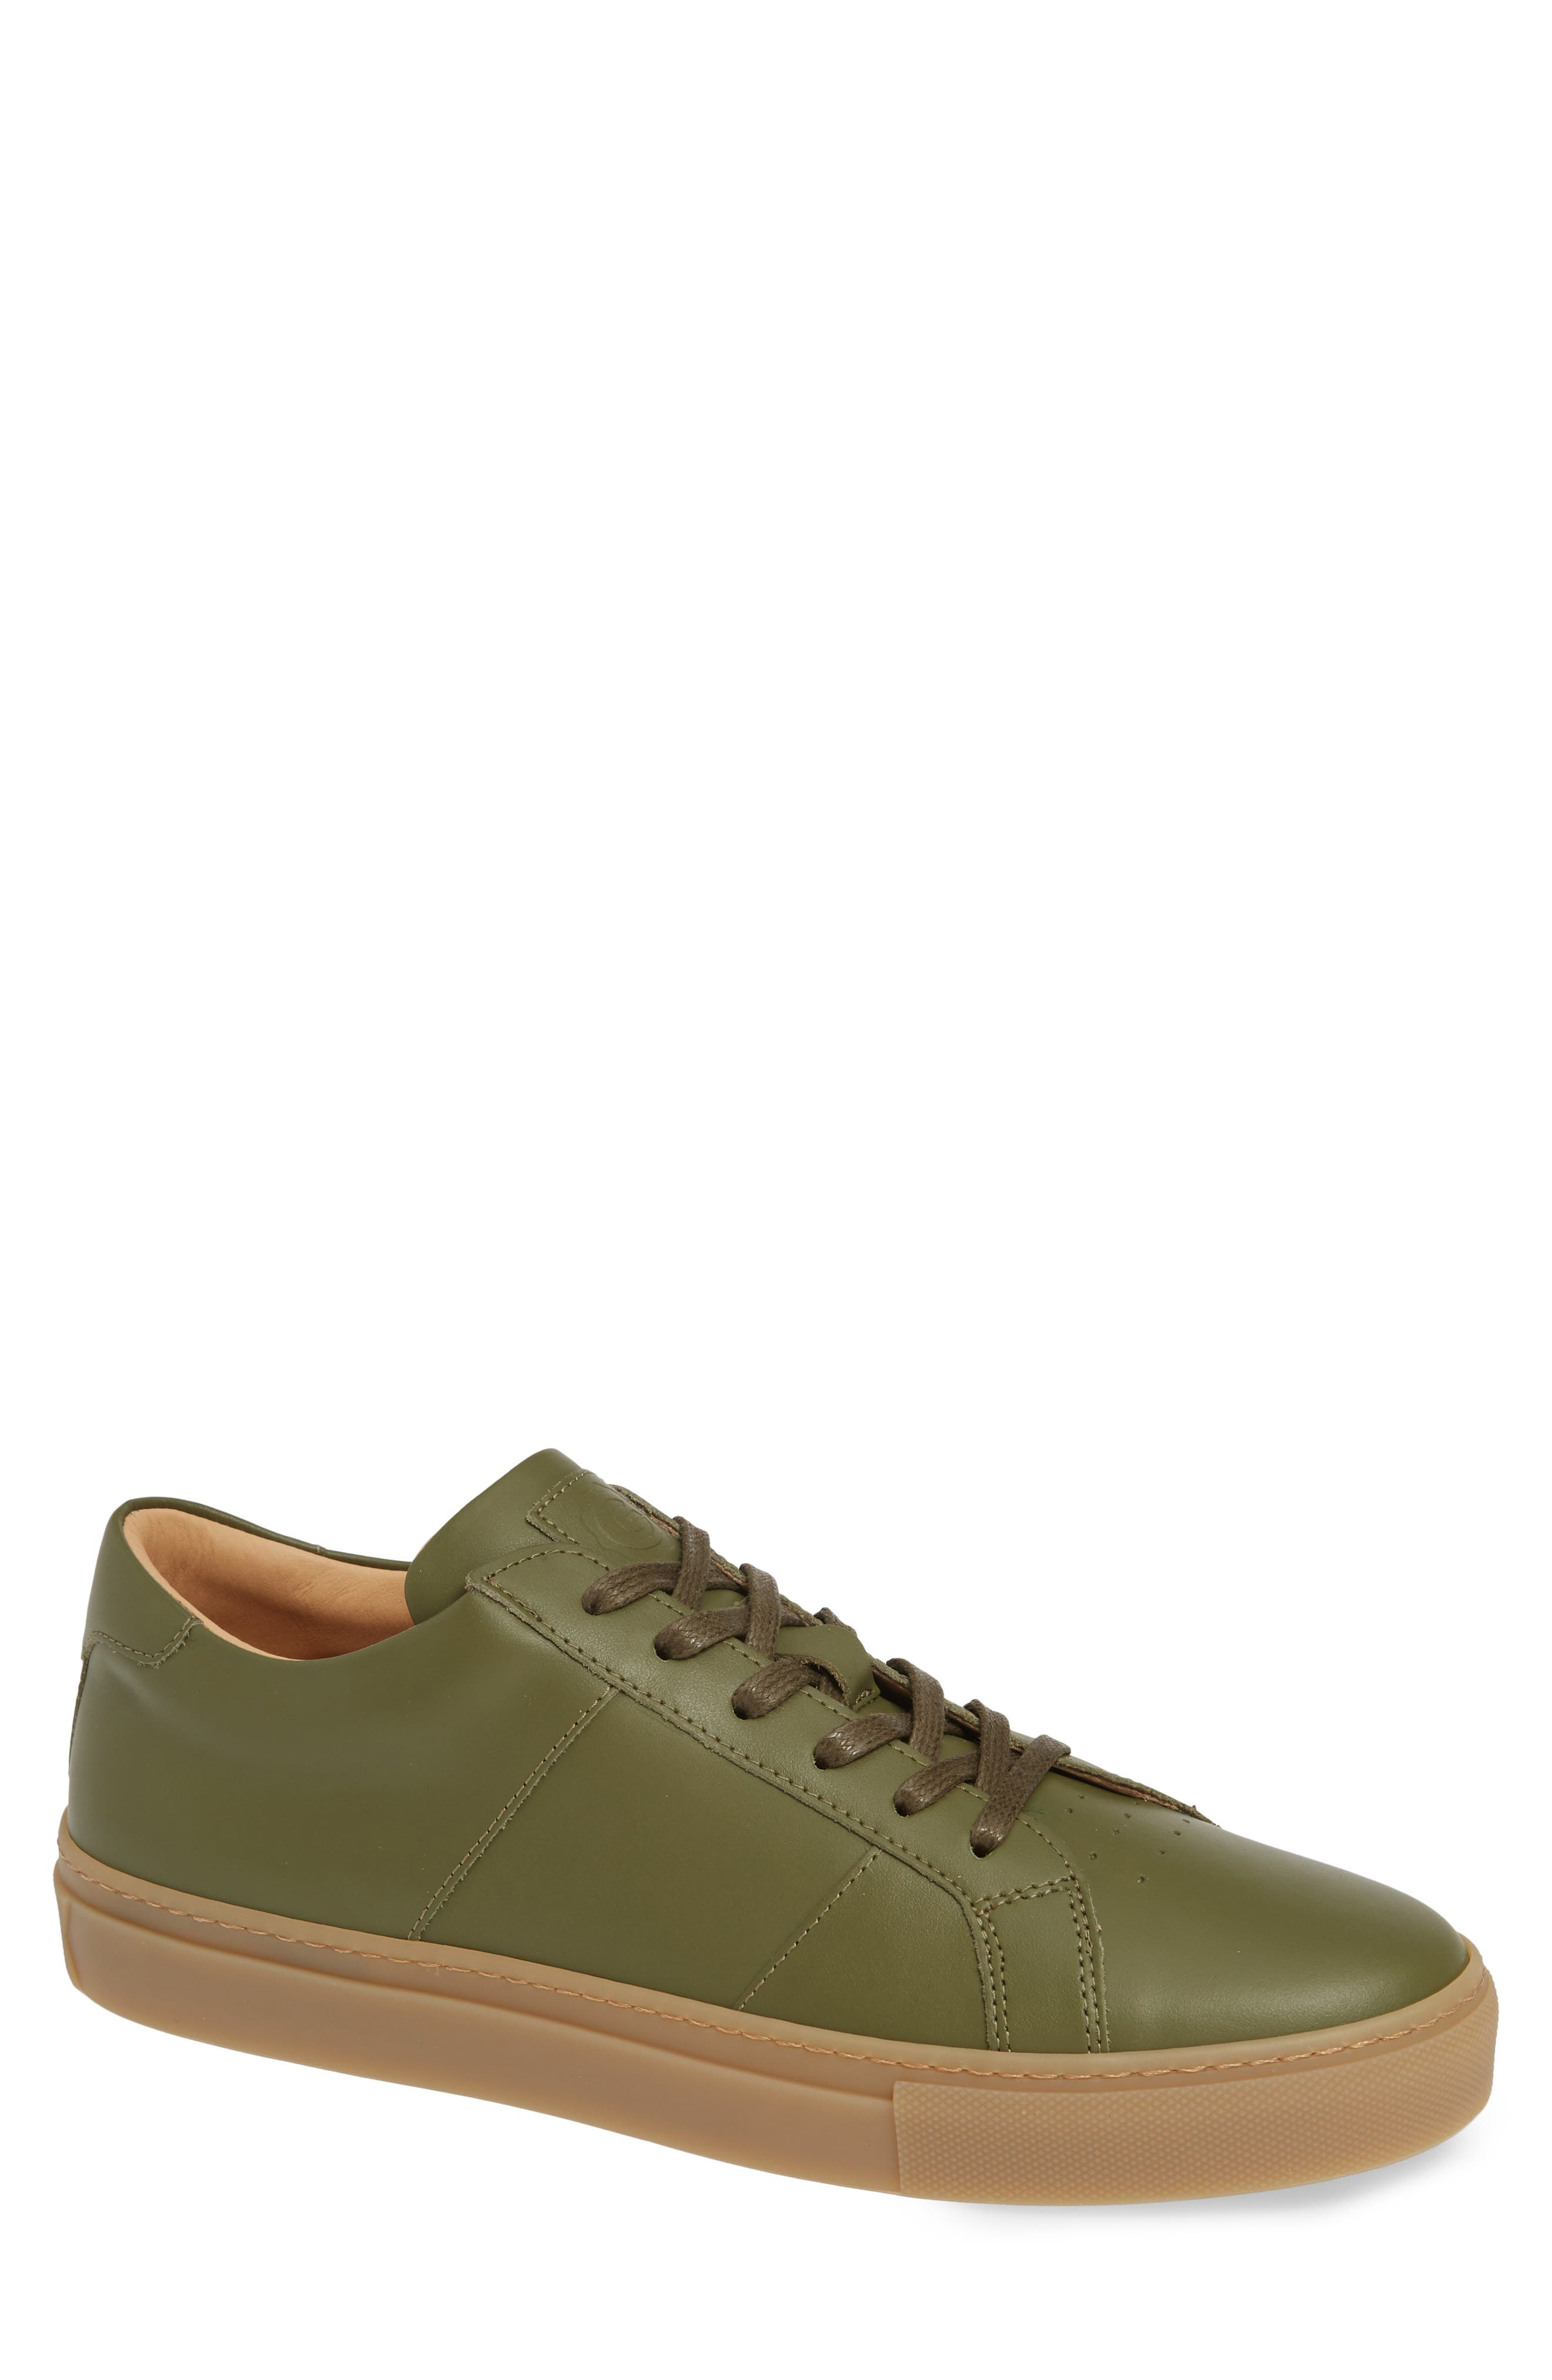 GREATS Royale Sneaker in Olive/ Gum Leather